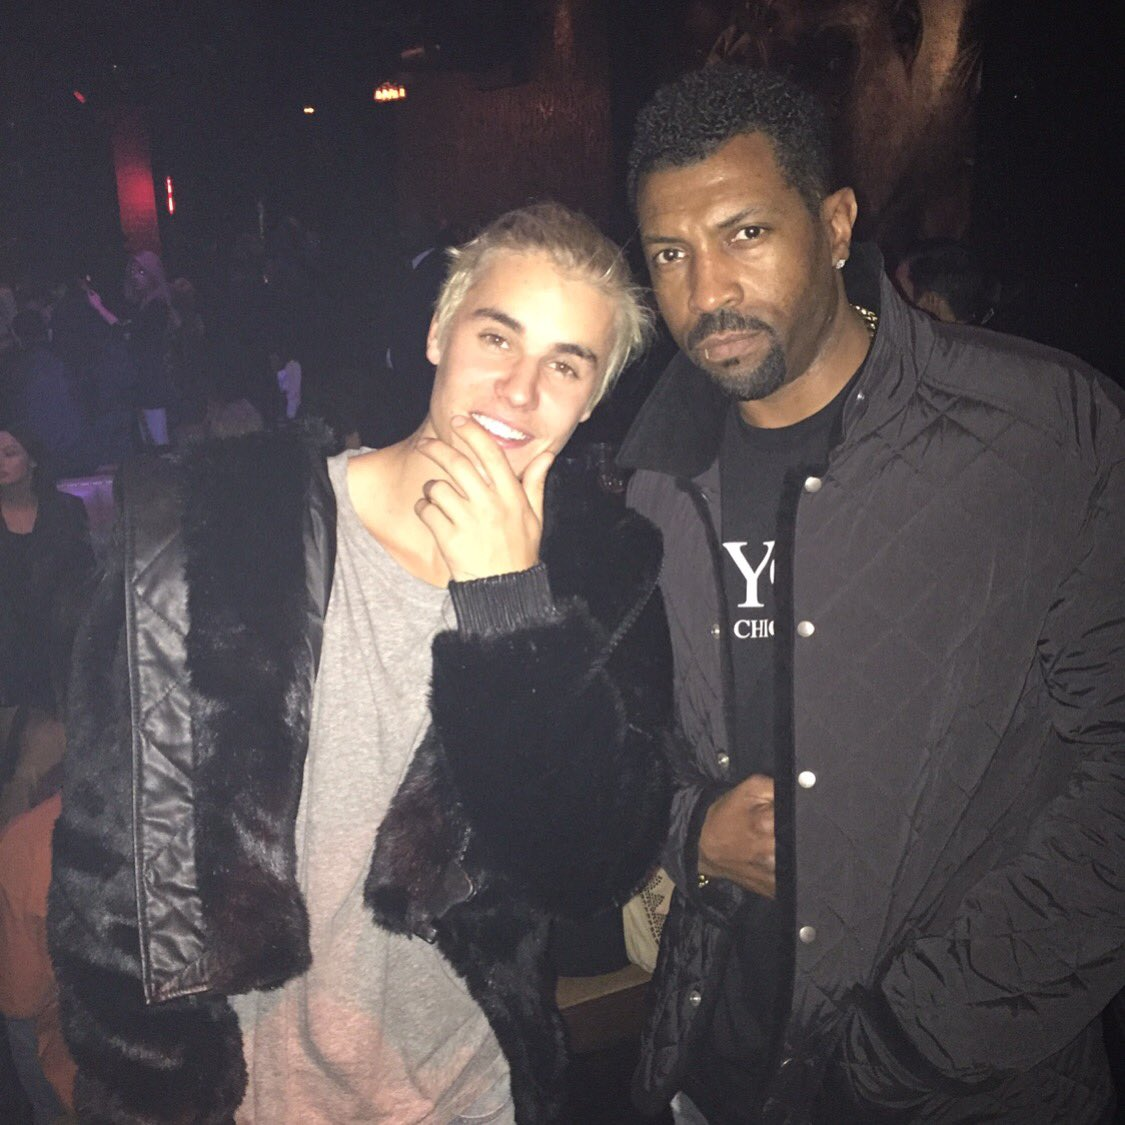 Cooling with the kid @justinbieber last night, Hollywood nights spinning baby! #deoncoleslaw #justakidfromthechi https://t.co/3jzULMQm3K